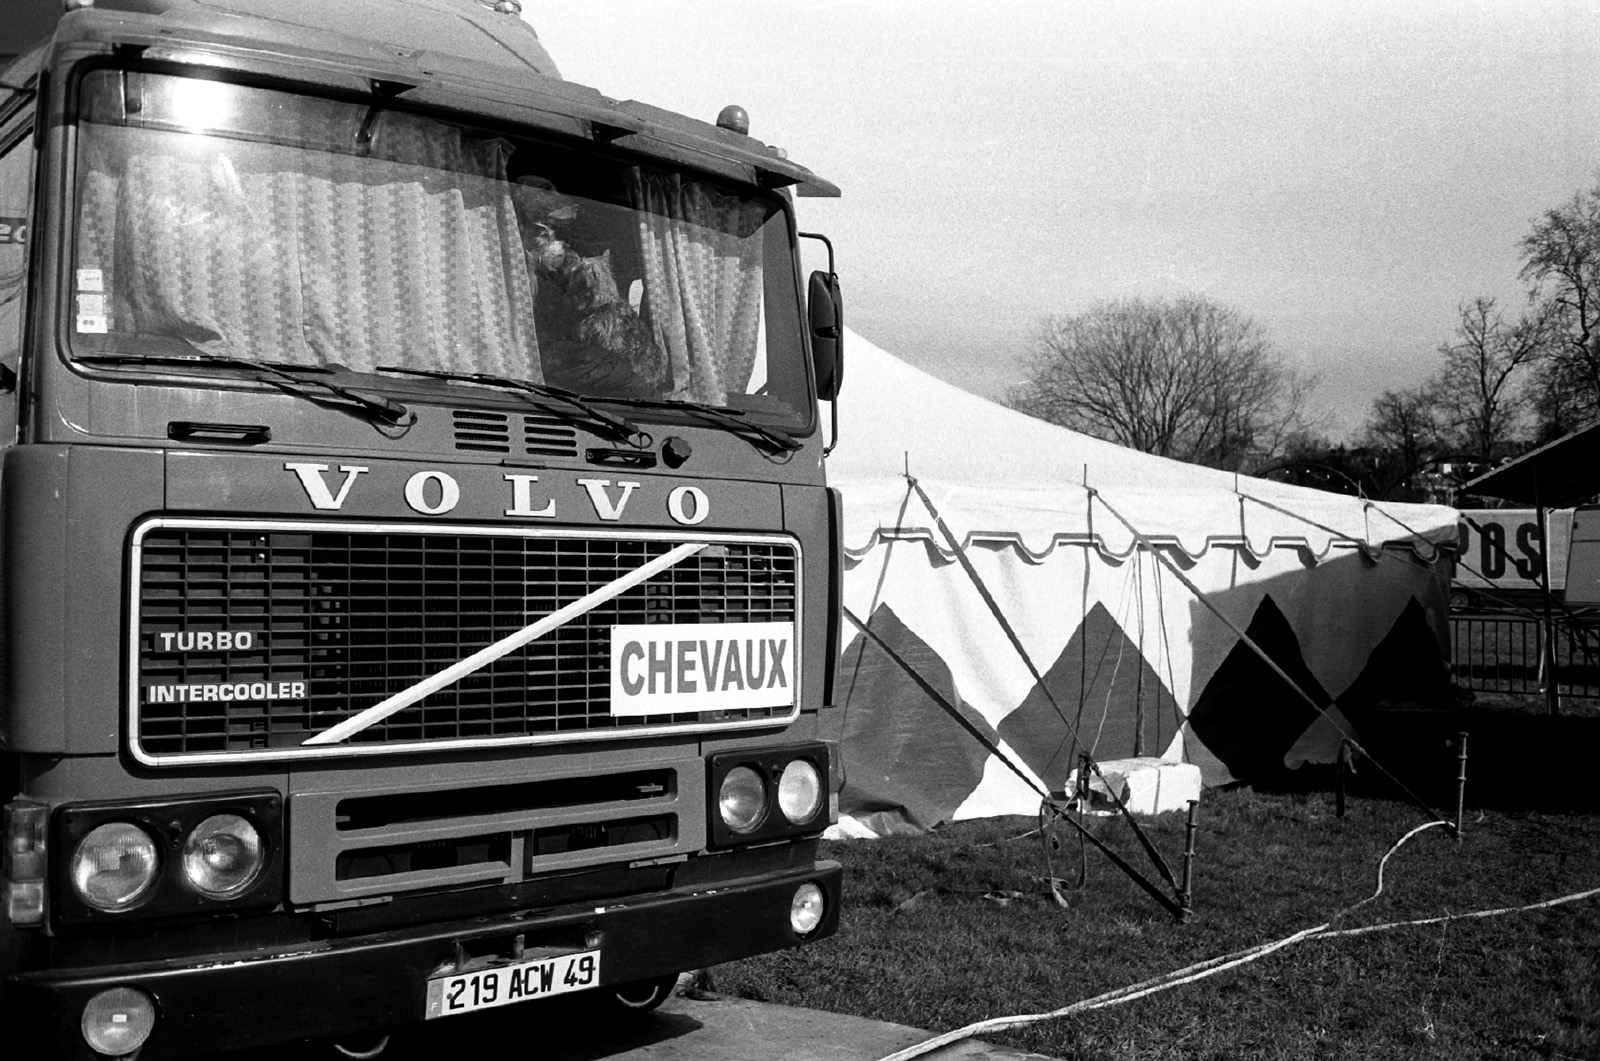 Dog in front of truck in fairground. Black and white film image.